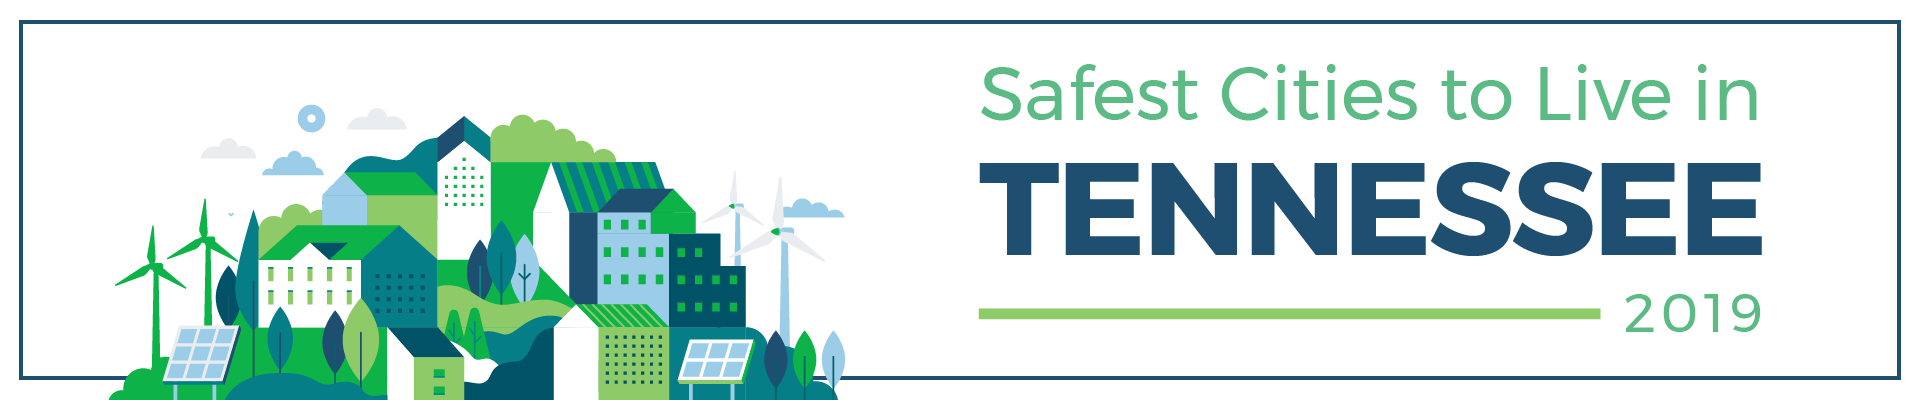 header - safest_cities_tennessee_2019